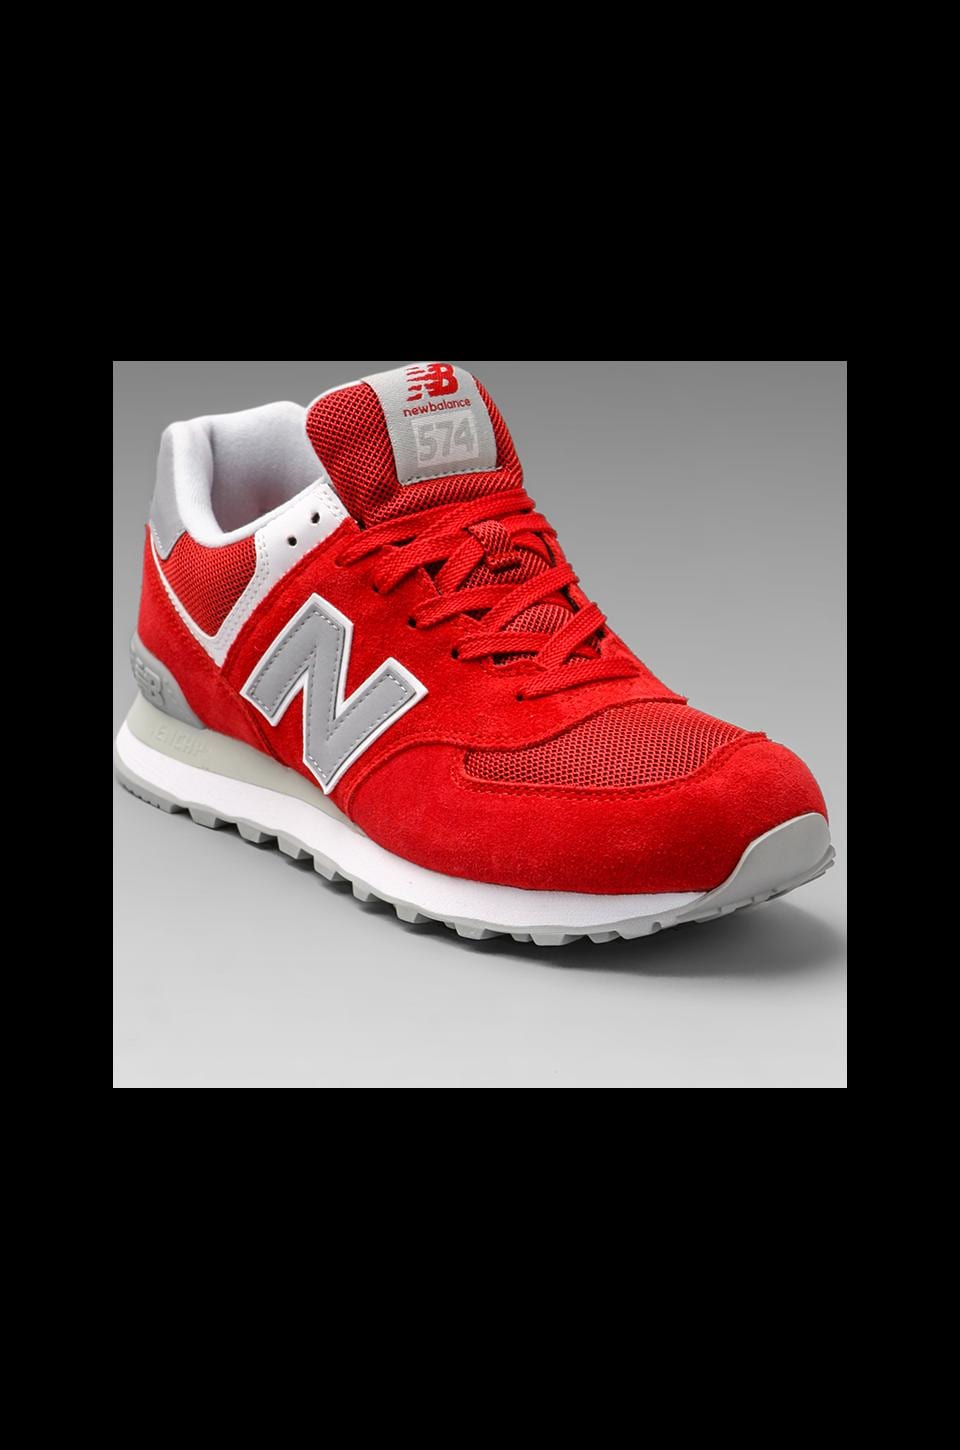 New Balance Classic ML574 in Red